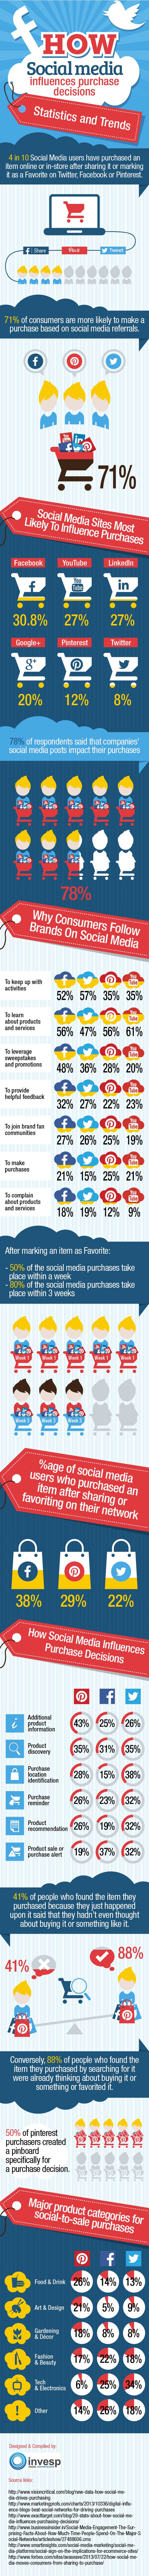 how-social-media-influences-purchase-decisions